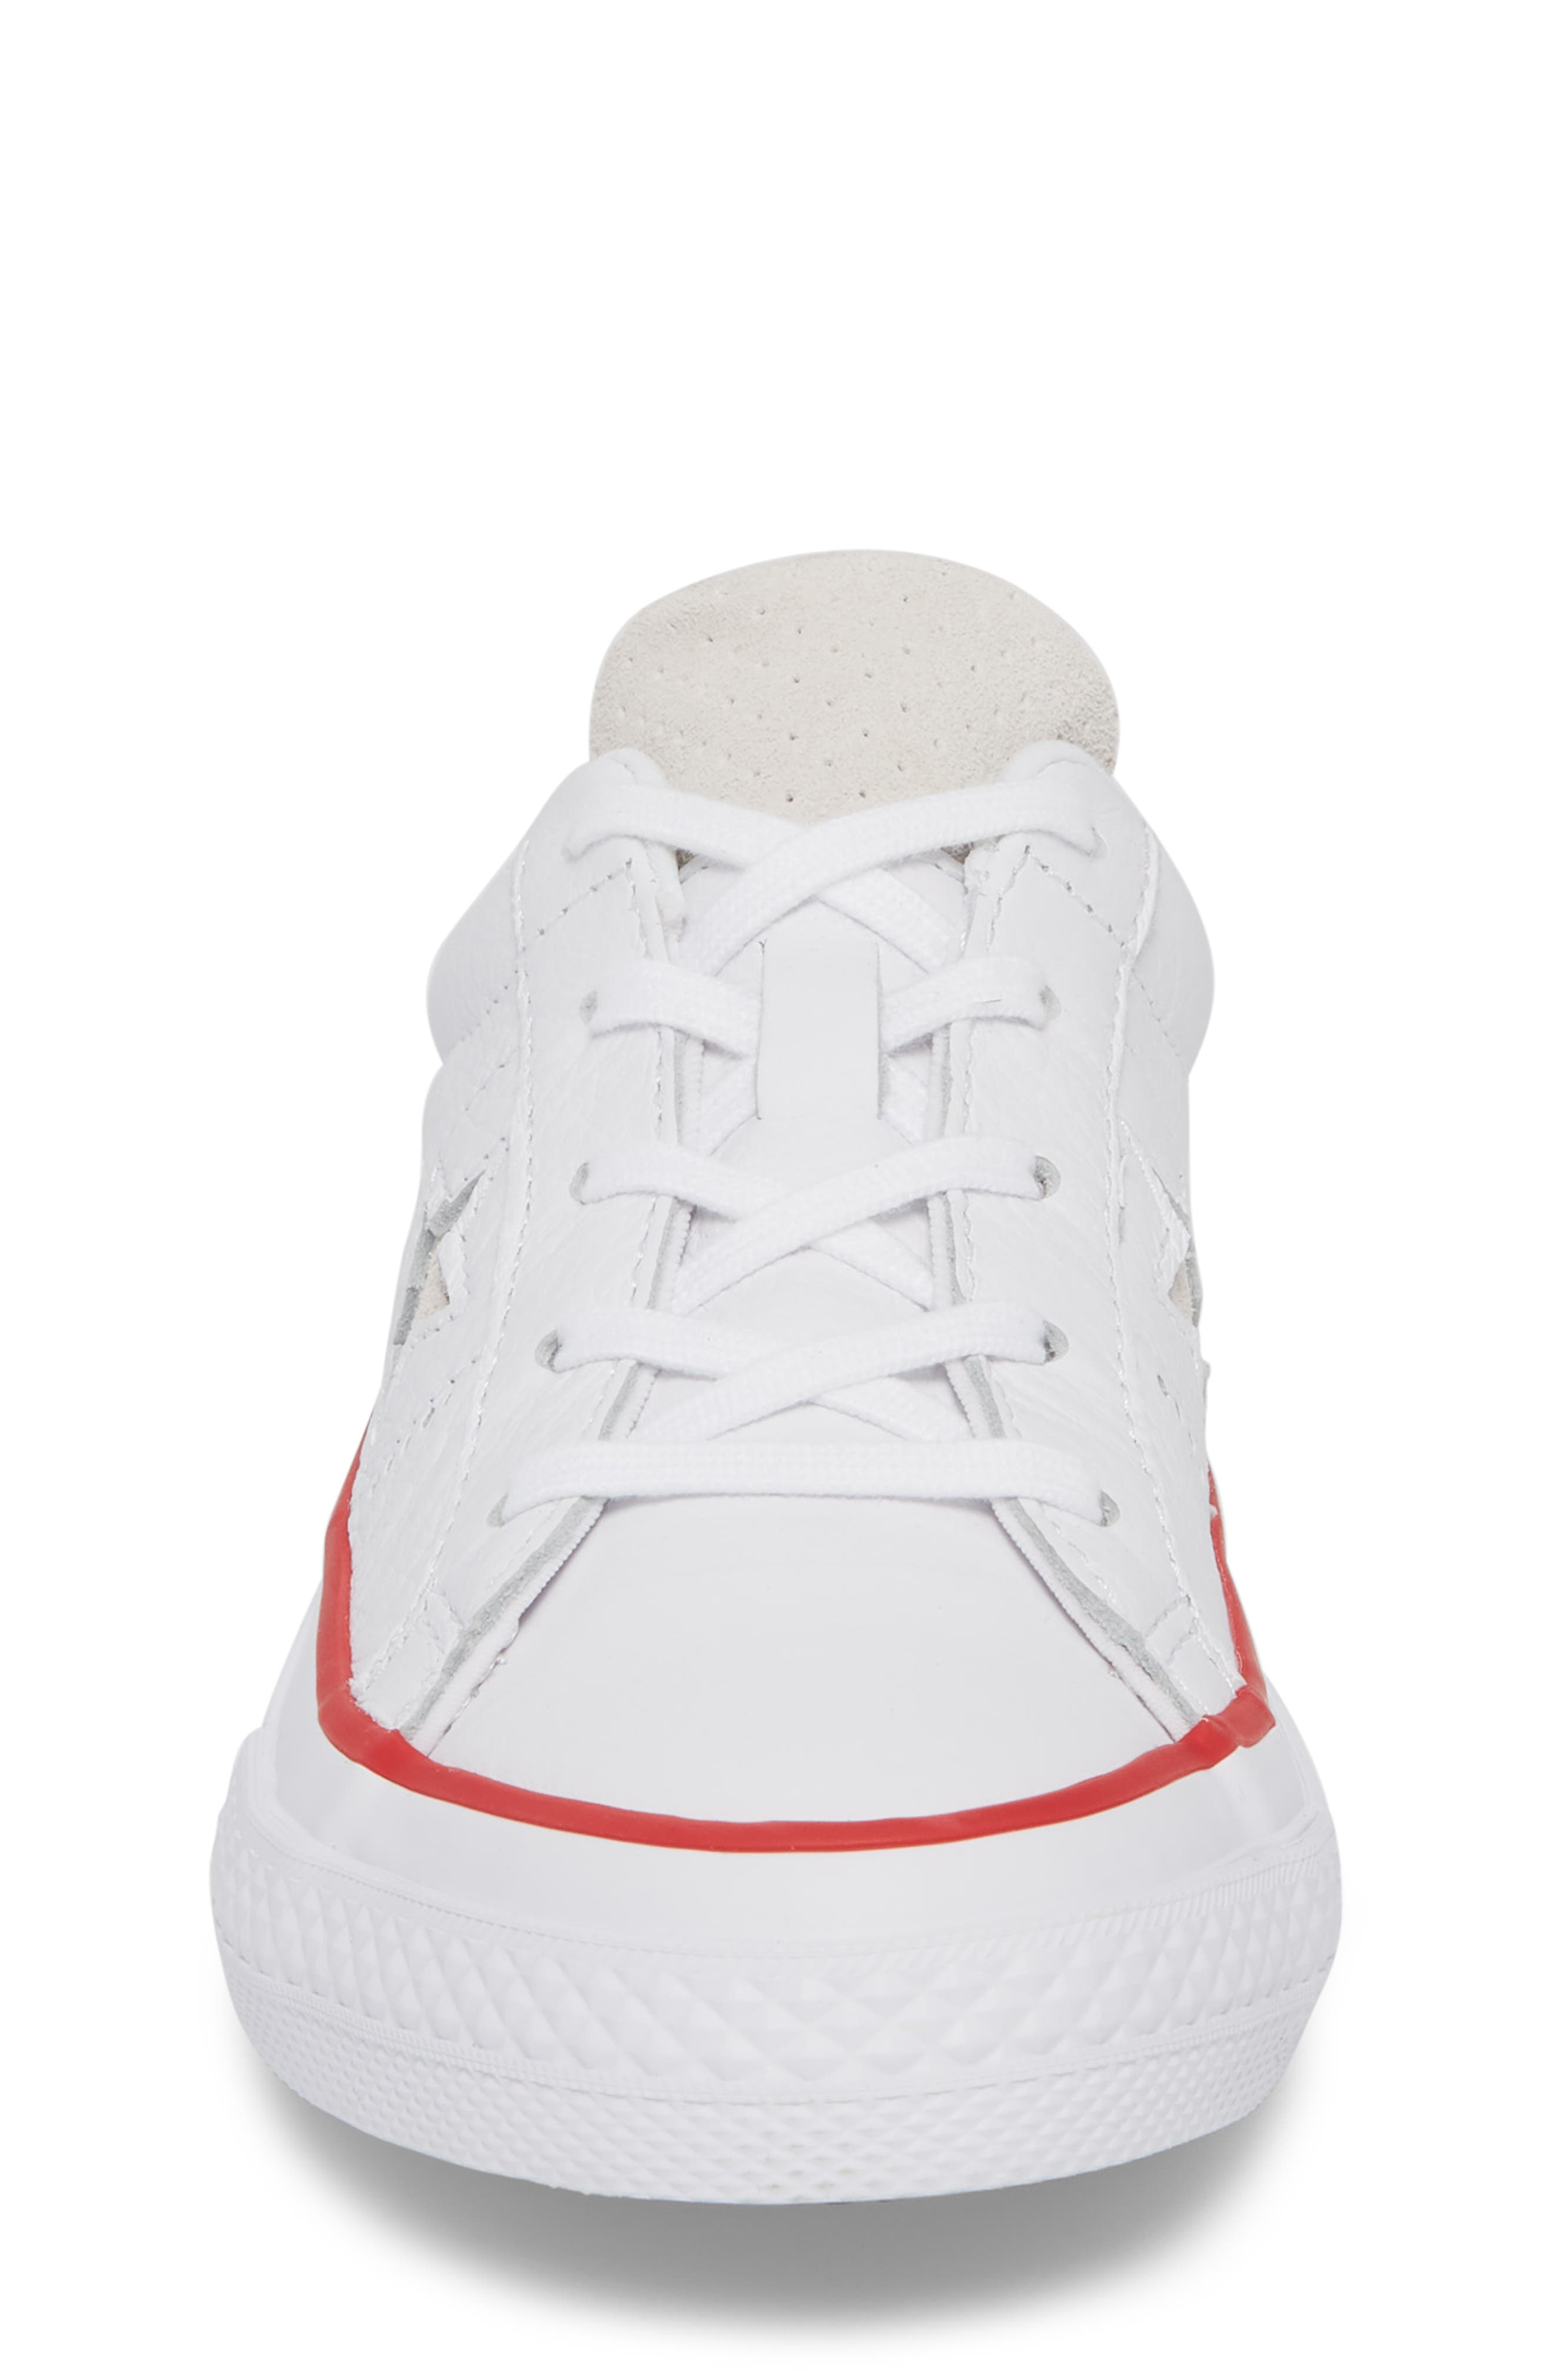 Chuck Taylor<sup>®</sup> All Star<sup>®</sup> New Heritage Oxford Sneaker,                             Alternate thumbnail 4, color,                             102